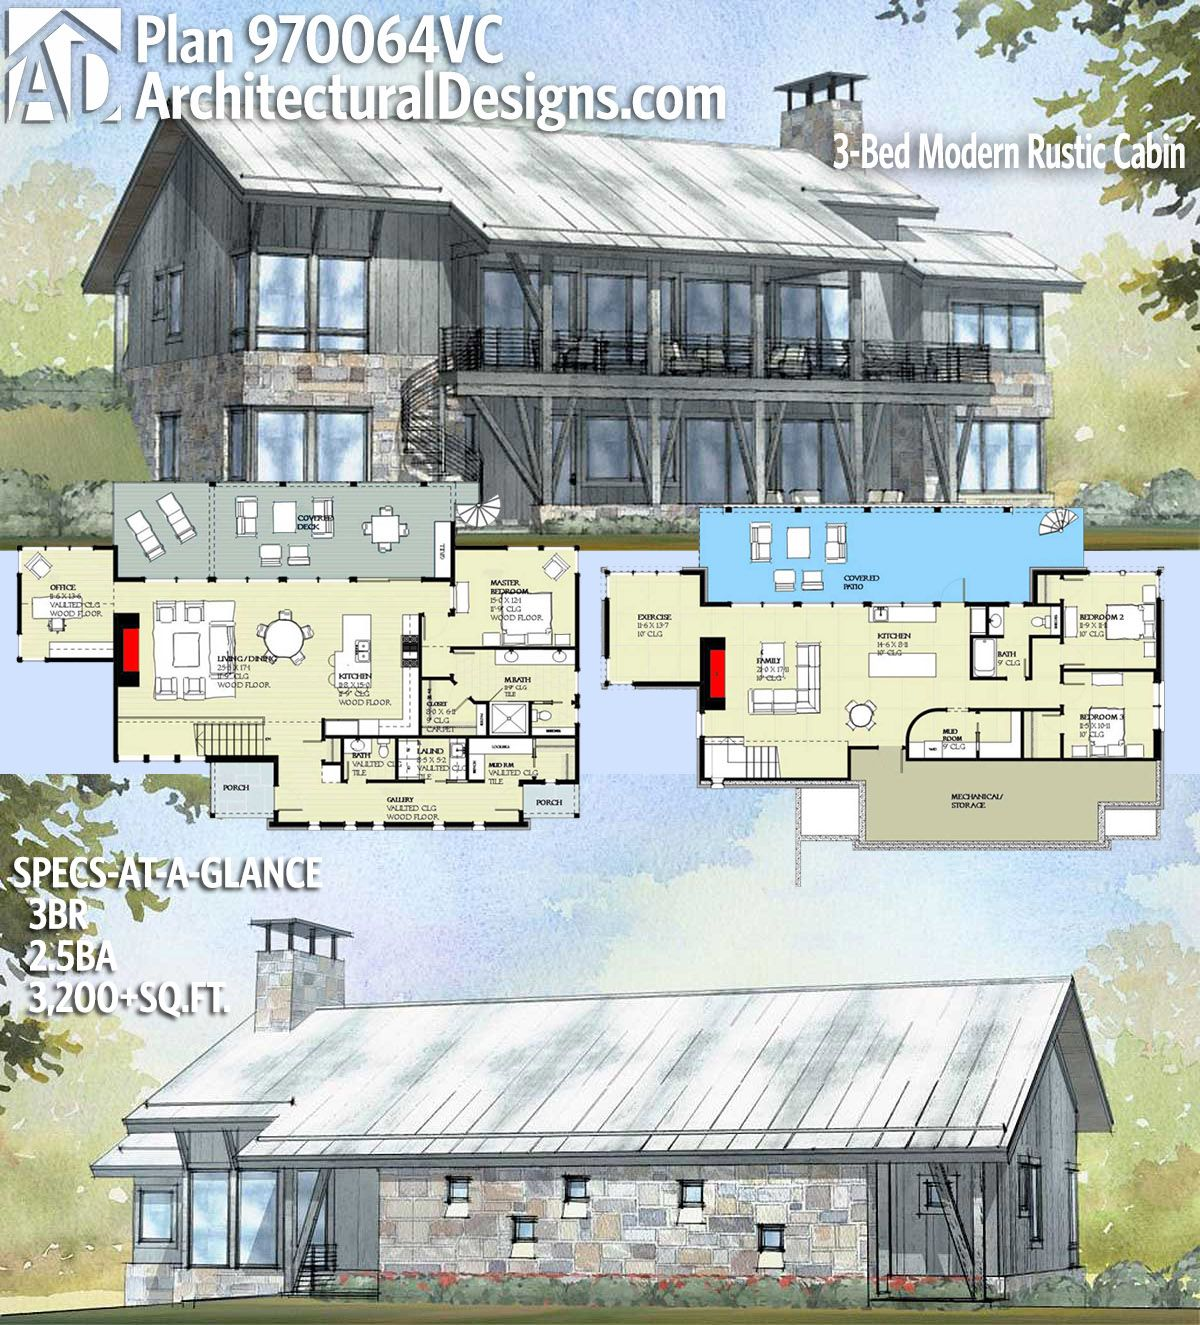 Plan 970064vc 3 Bed Modern Rustic Cabin Barn House Plans Architectural Design House Plans New House Plans